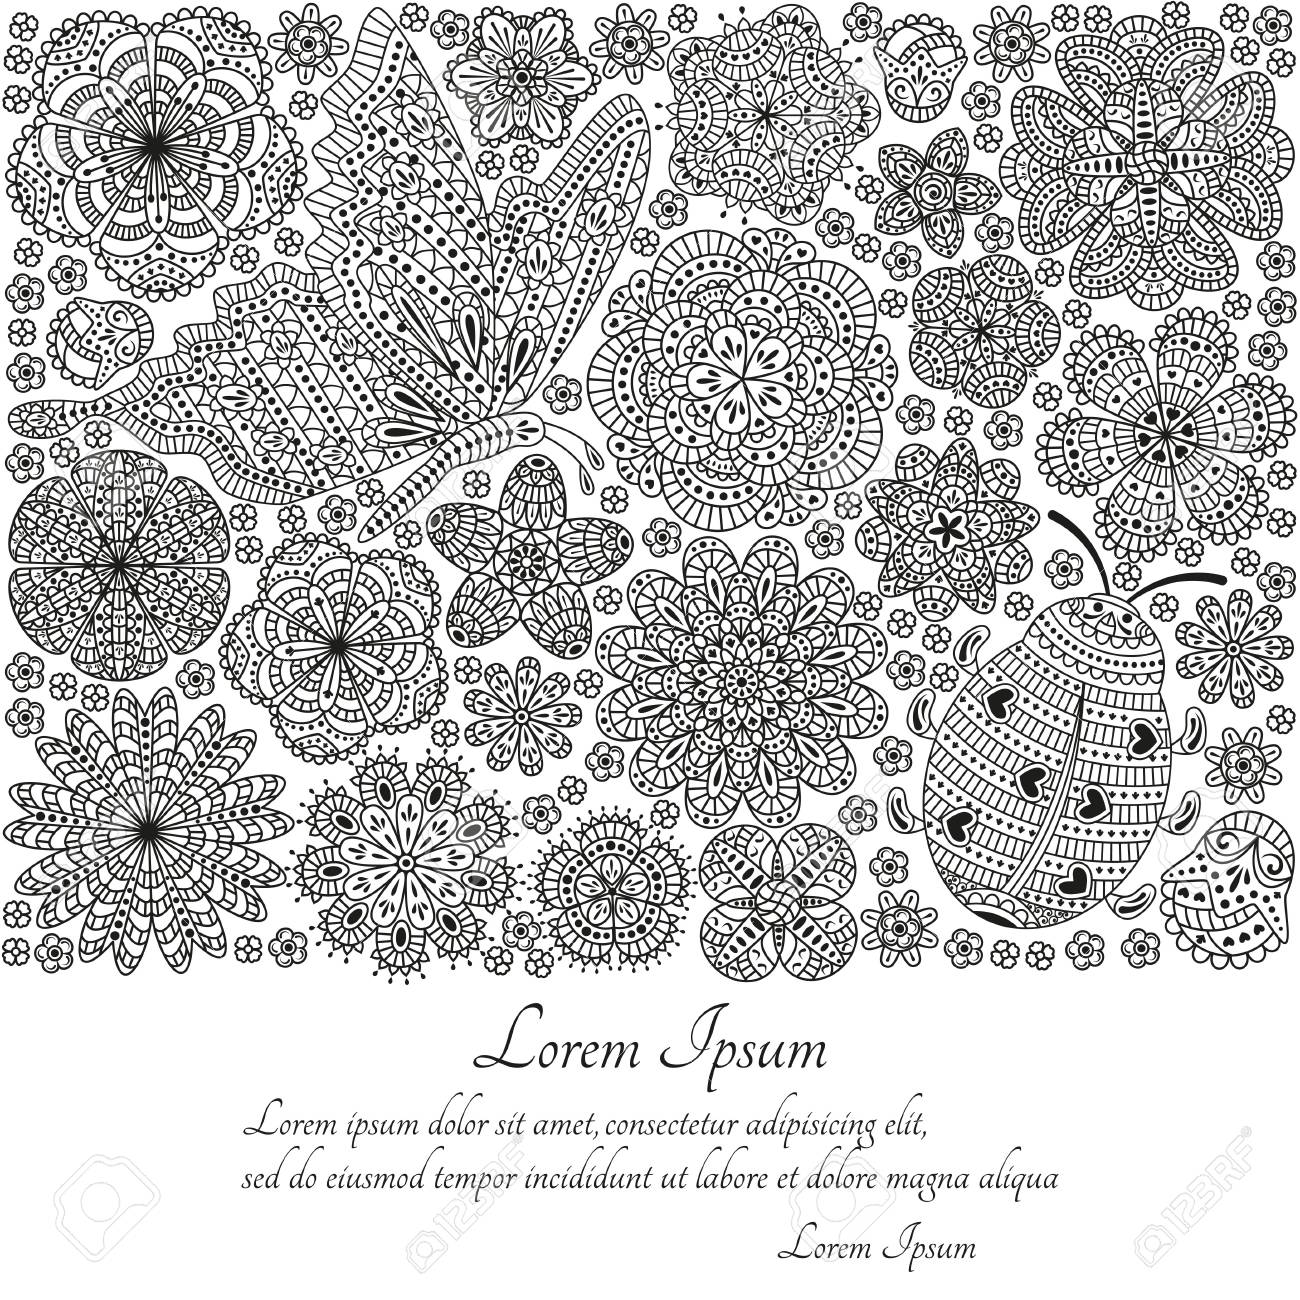 Greeting Card Or Template With Butterfly, Ladybug And Many Ornate ...